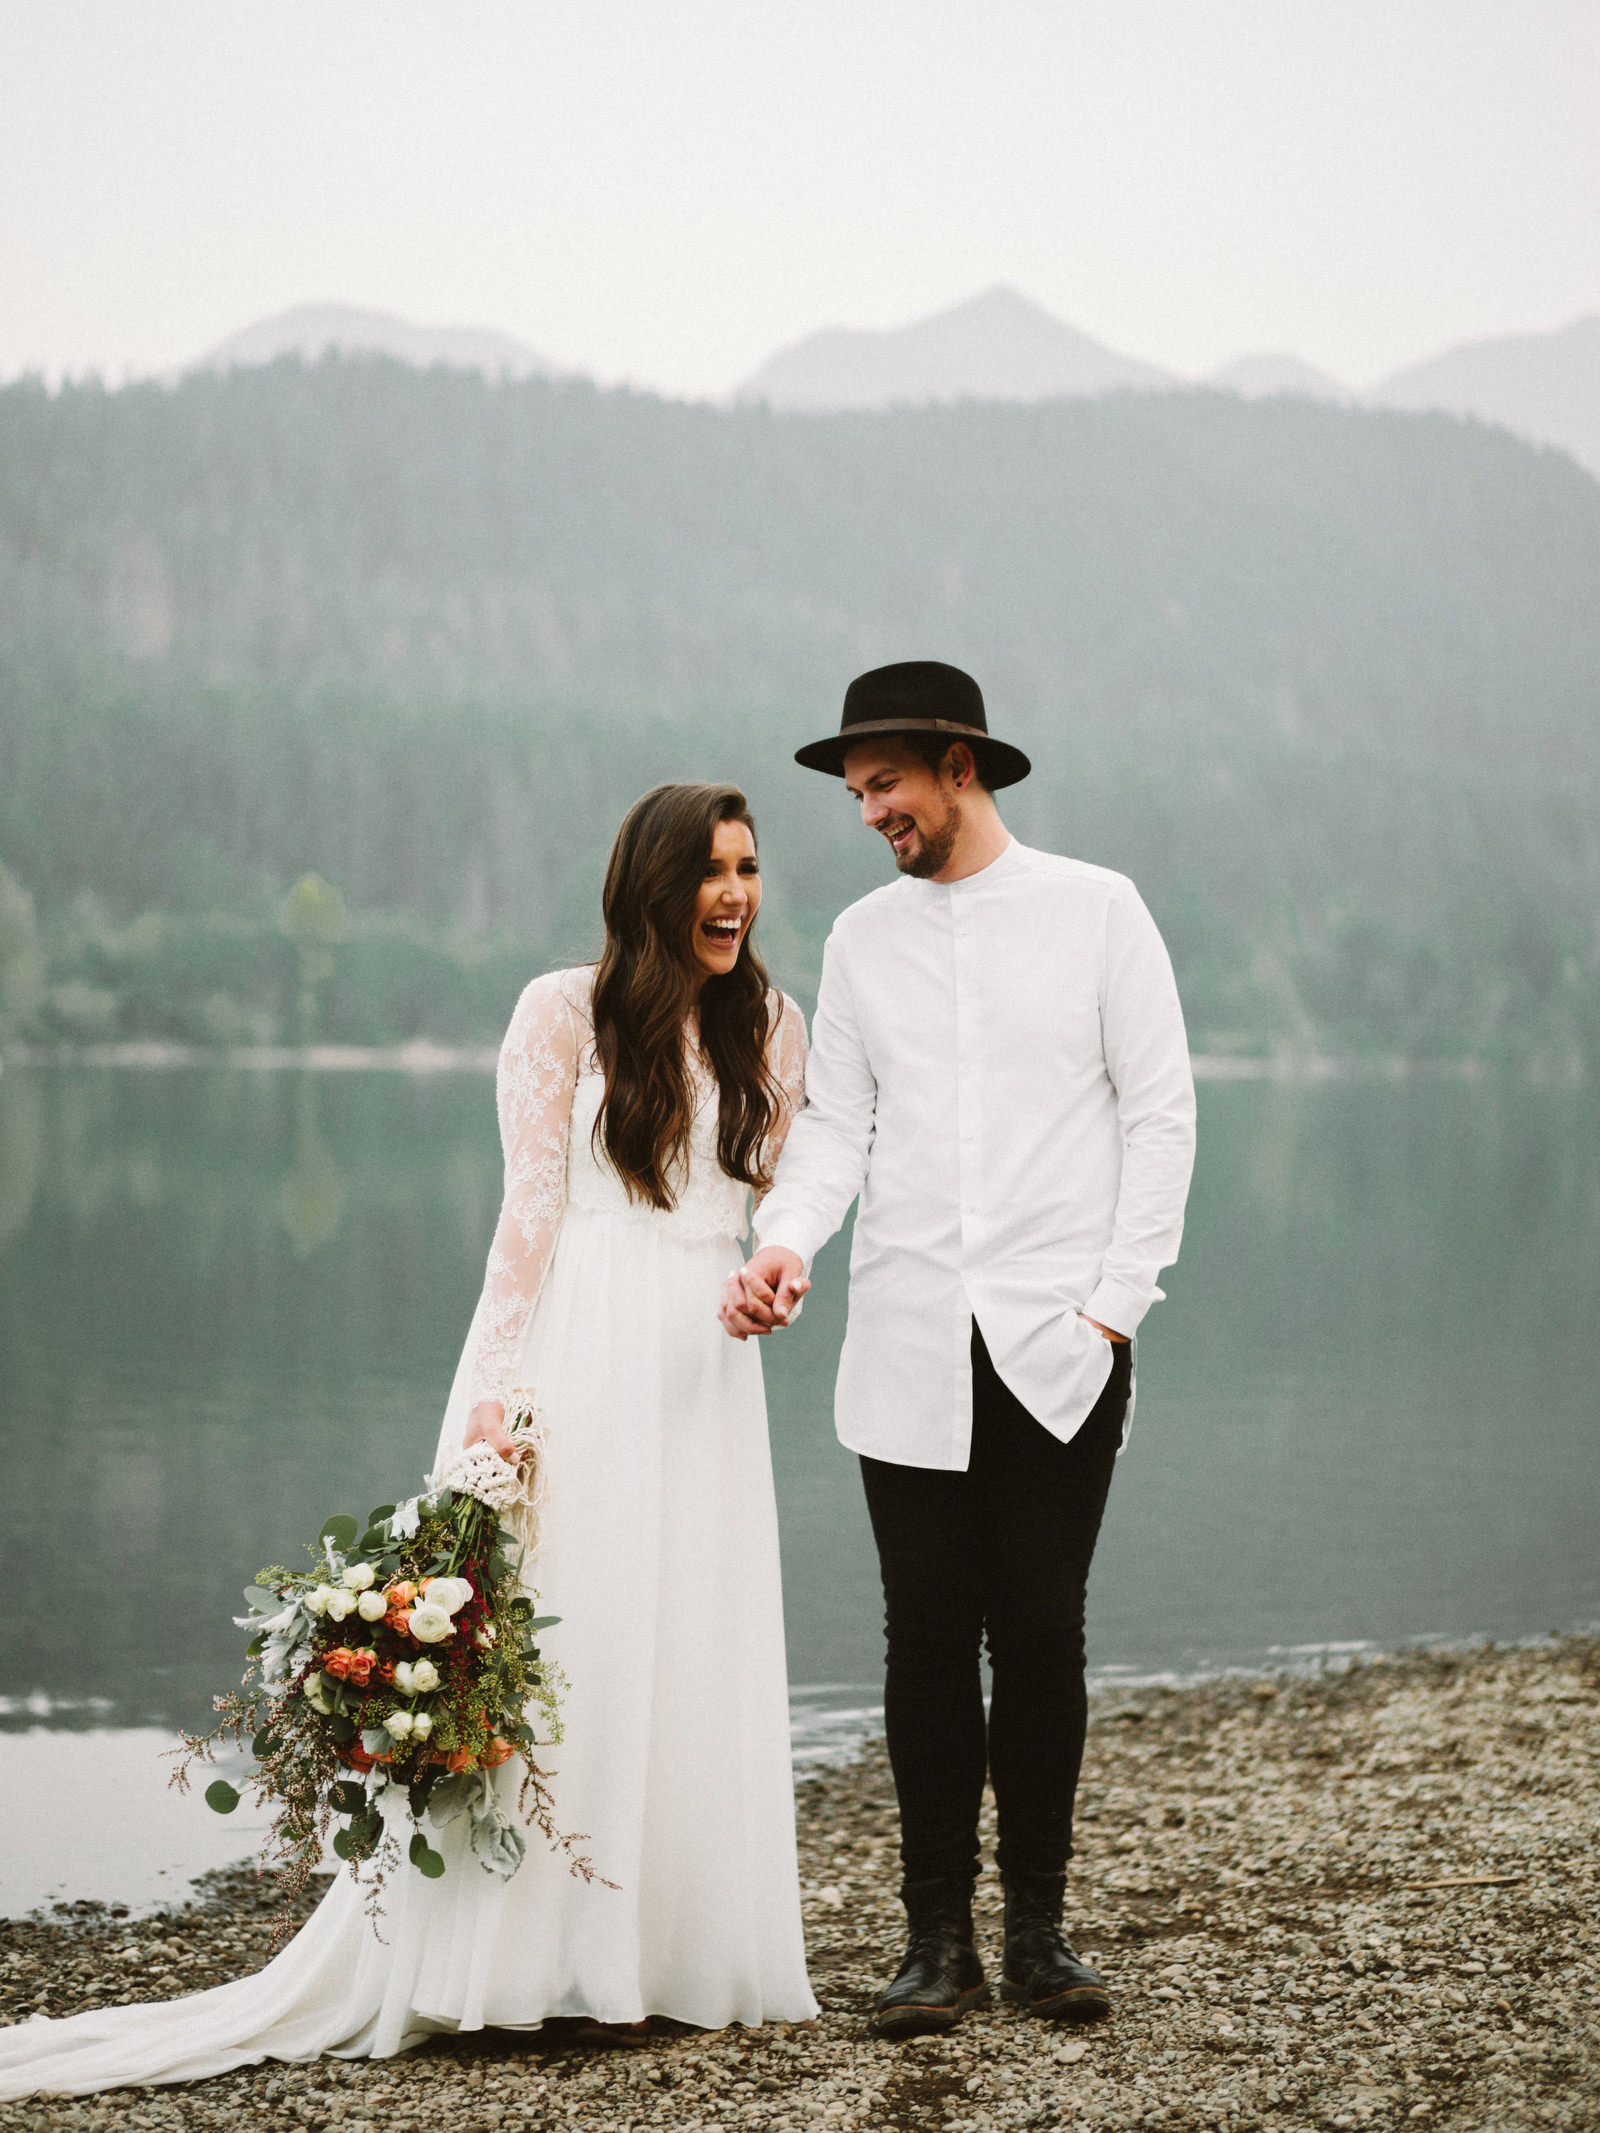 athena-and-camron-seattle-elopement-wedding-benj-haisch-rattlesnake-lake-christian-couple-goals79